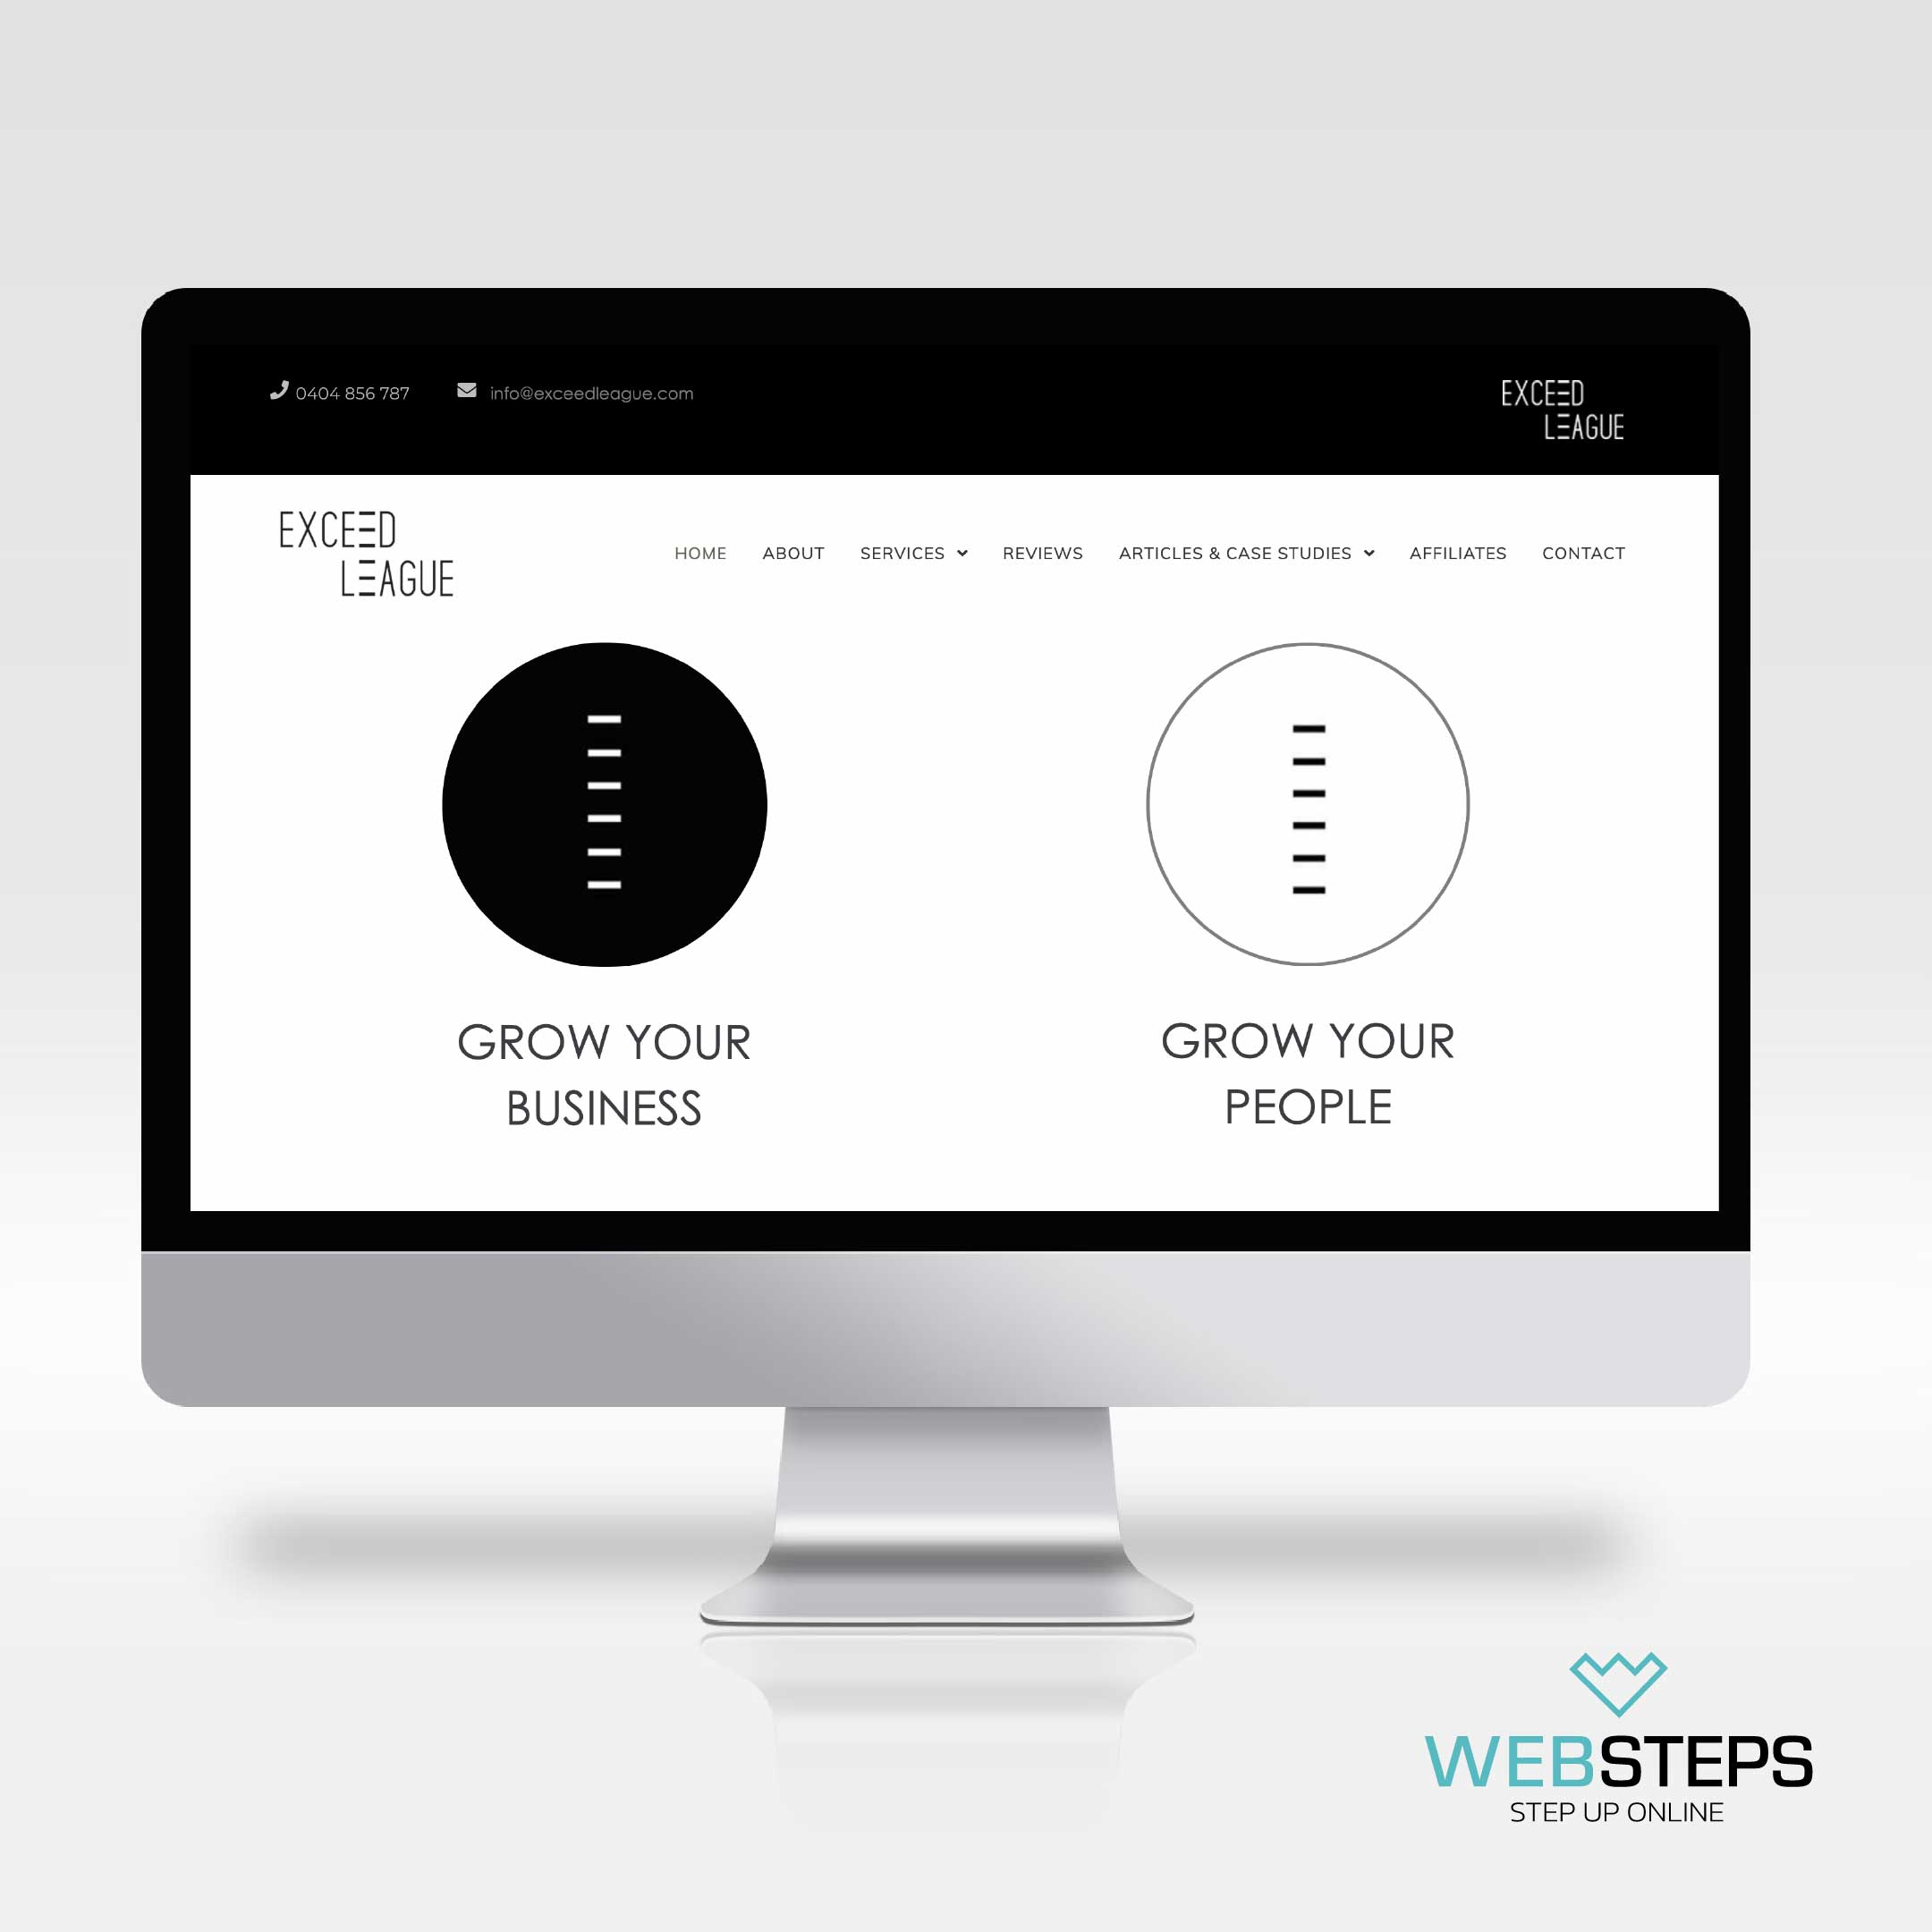 websteps-recent-projects-exceed-league